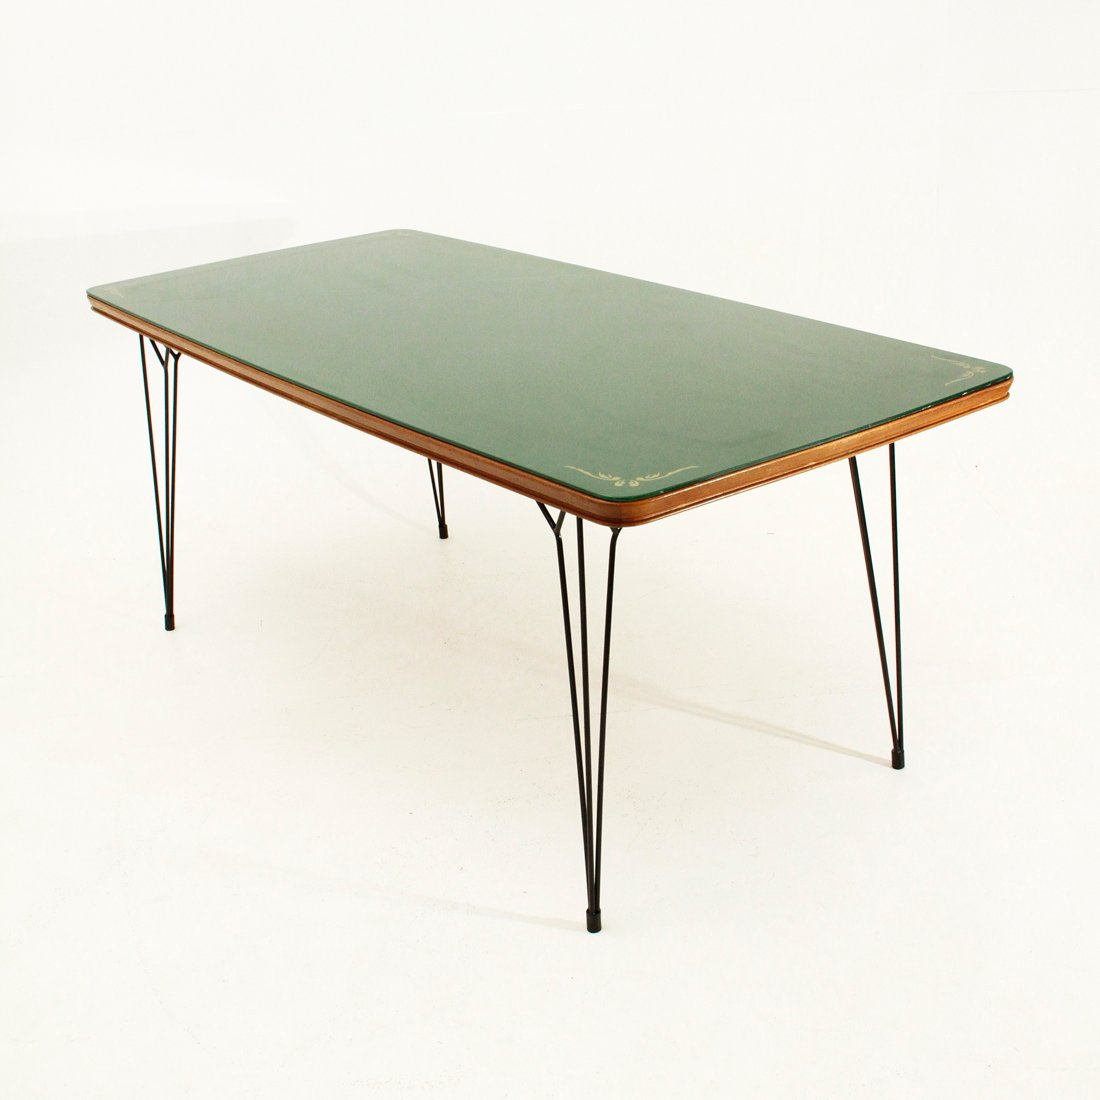 Italian dining table with glass top and metal legs 1950s for Italian dining table